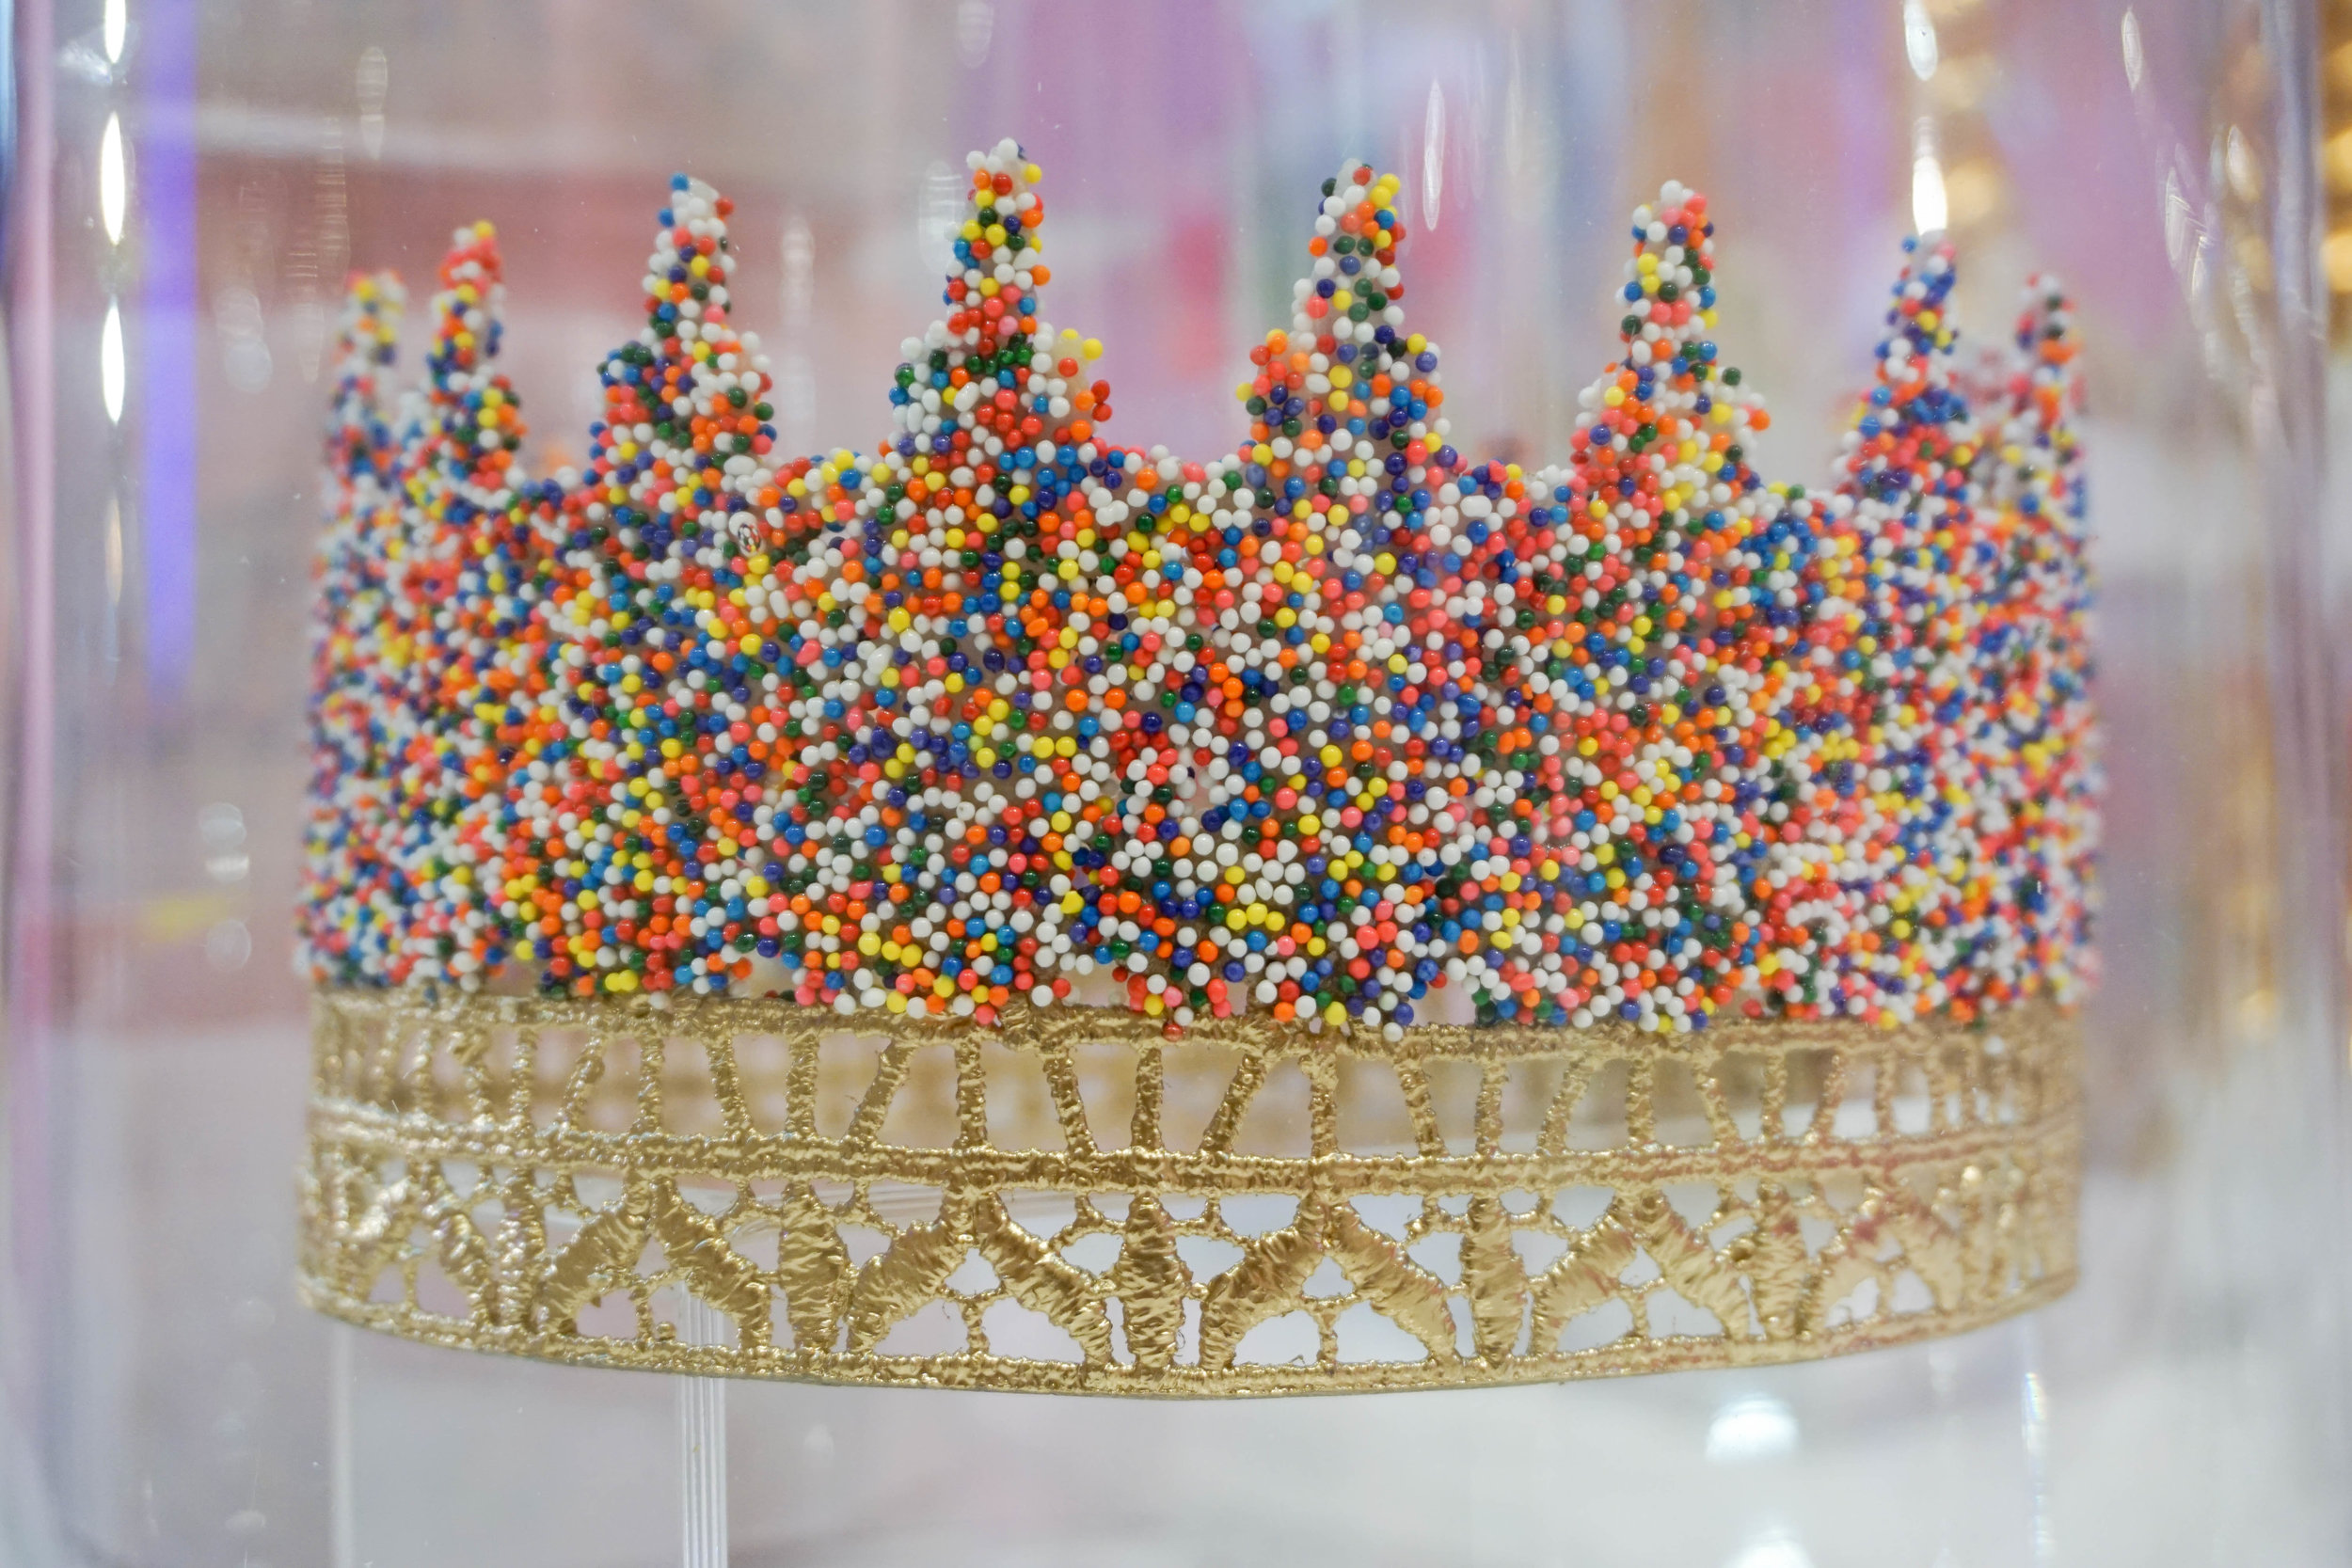 And now to the gift shop! How amazing is this sprinkles crown?